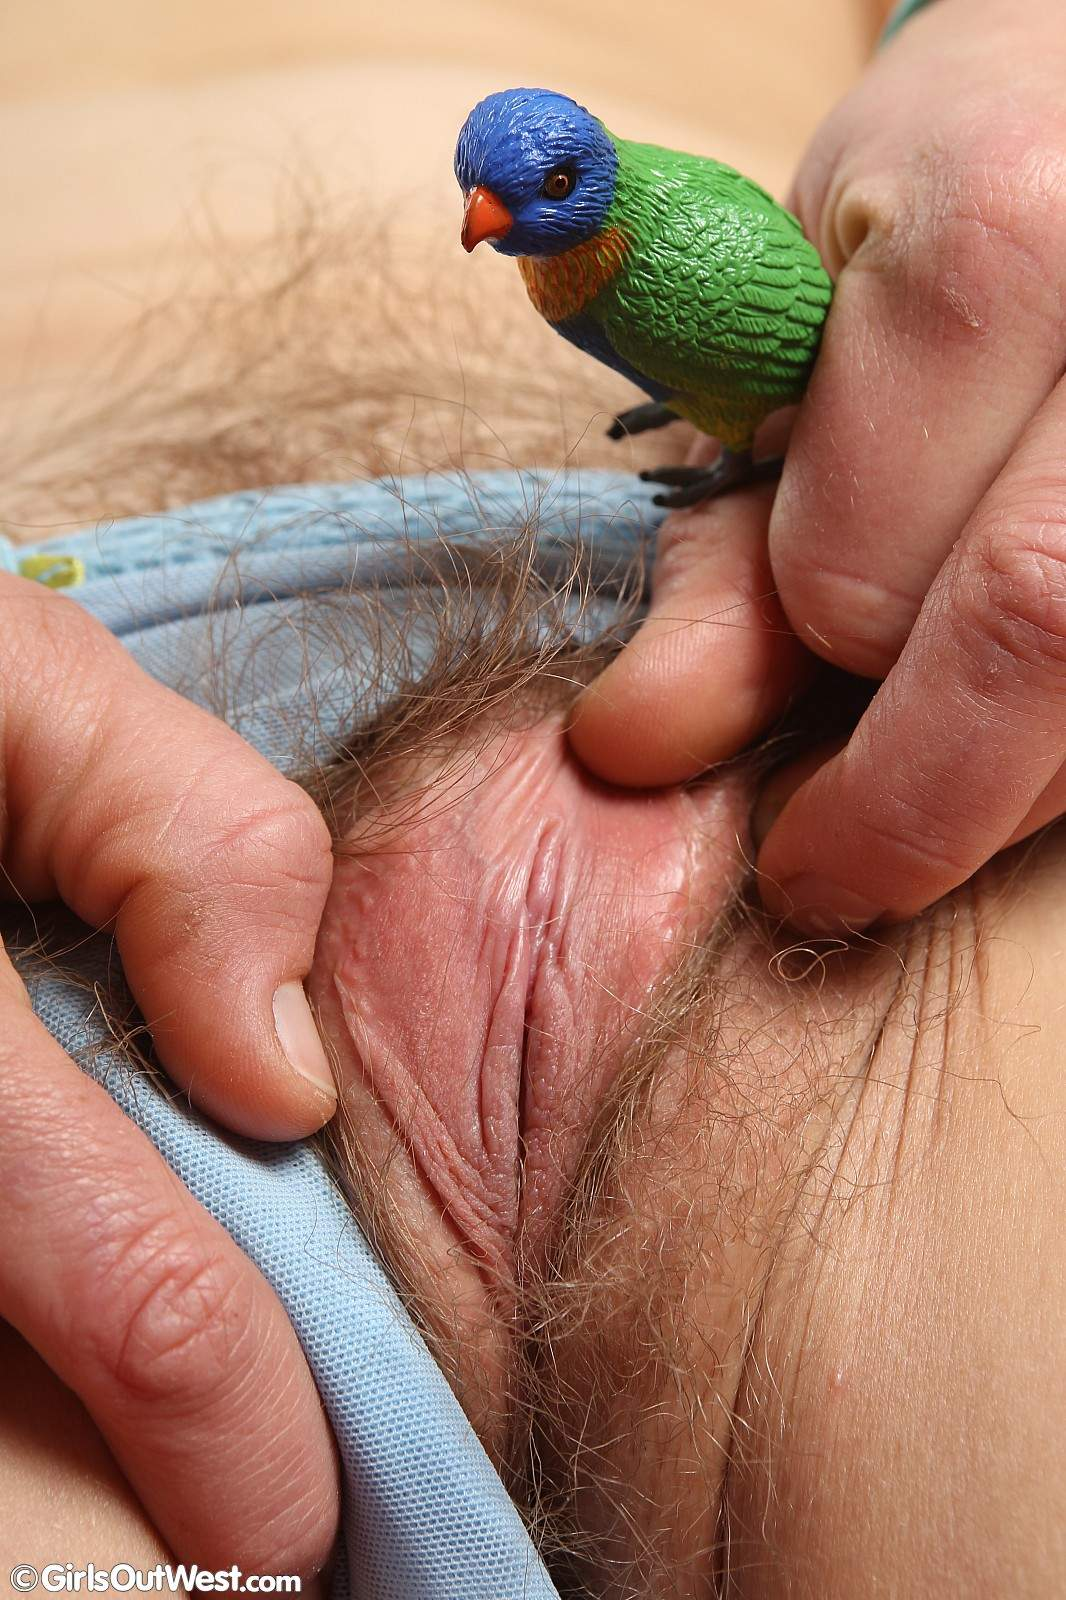 image Girls out west australian girl massaging her clitoris